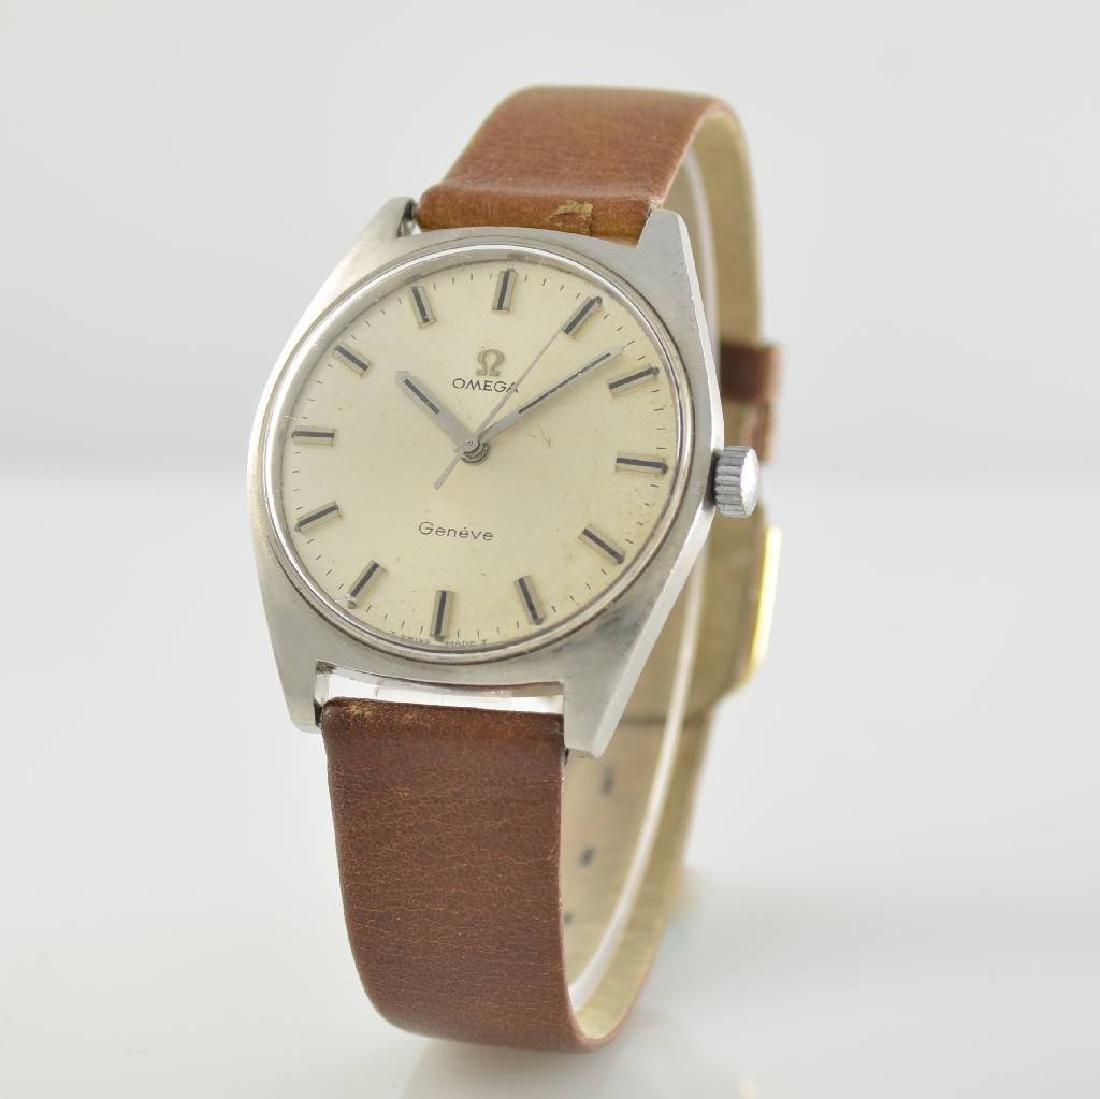 OMEGA manual wound gents wristwatch series Geneve - 3